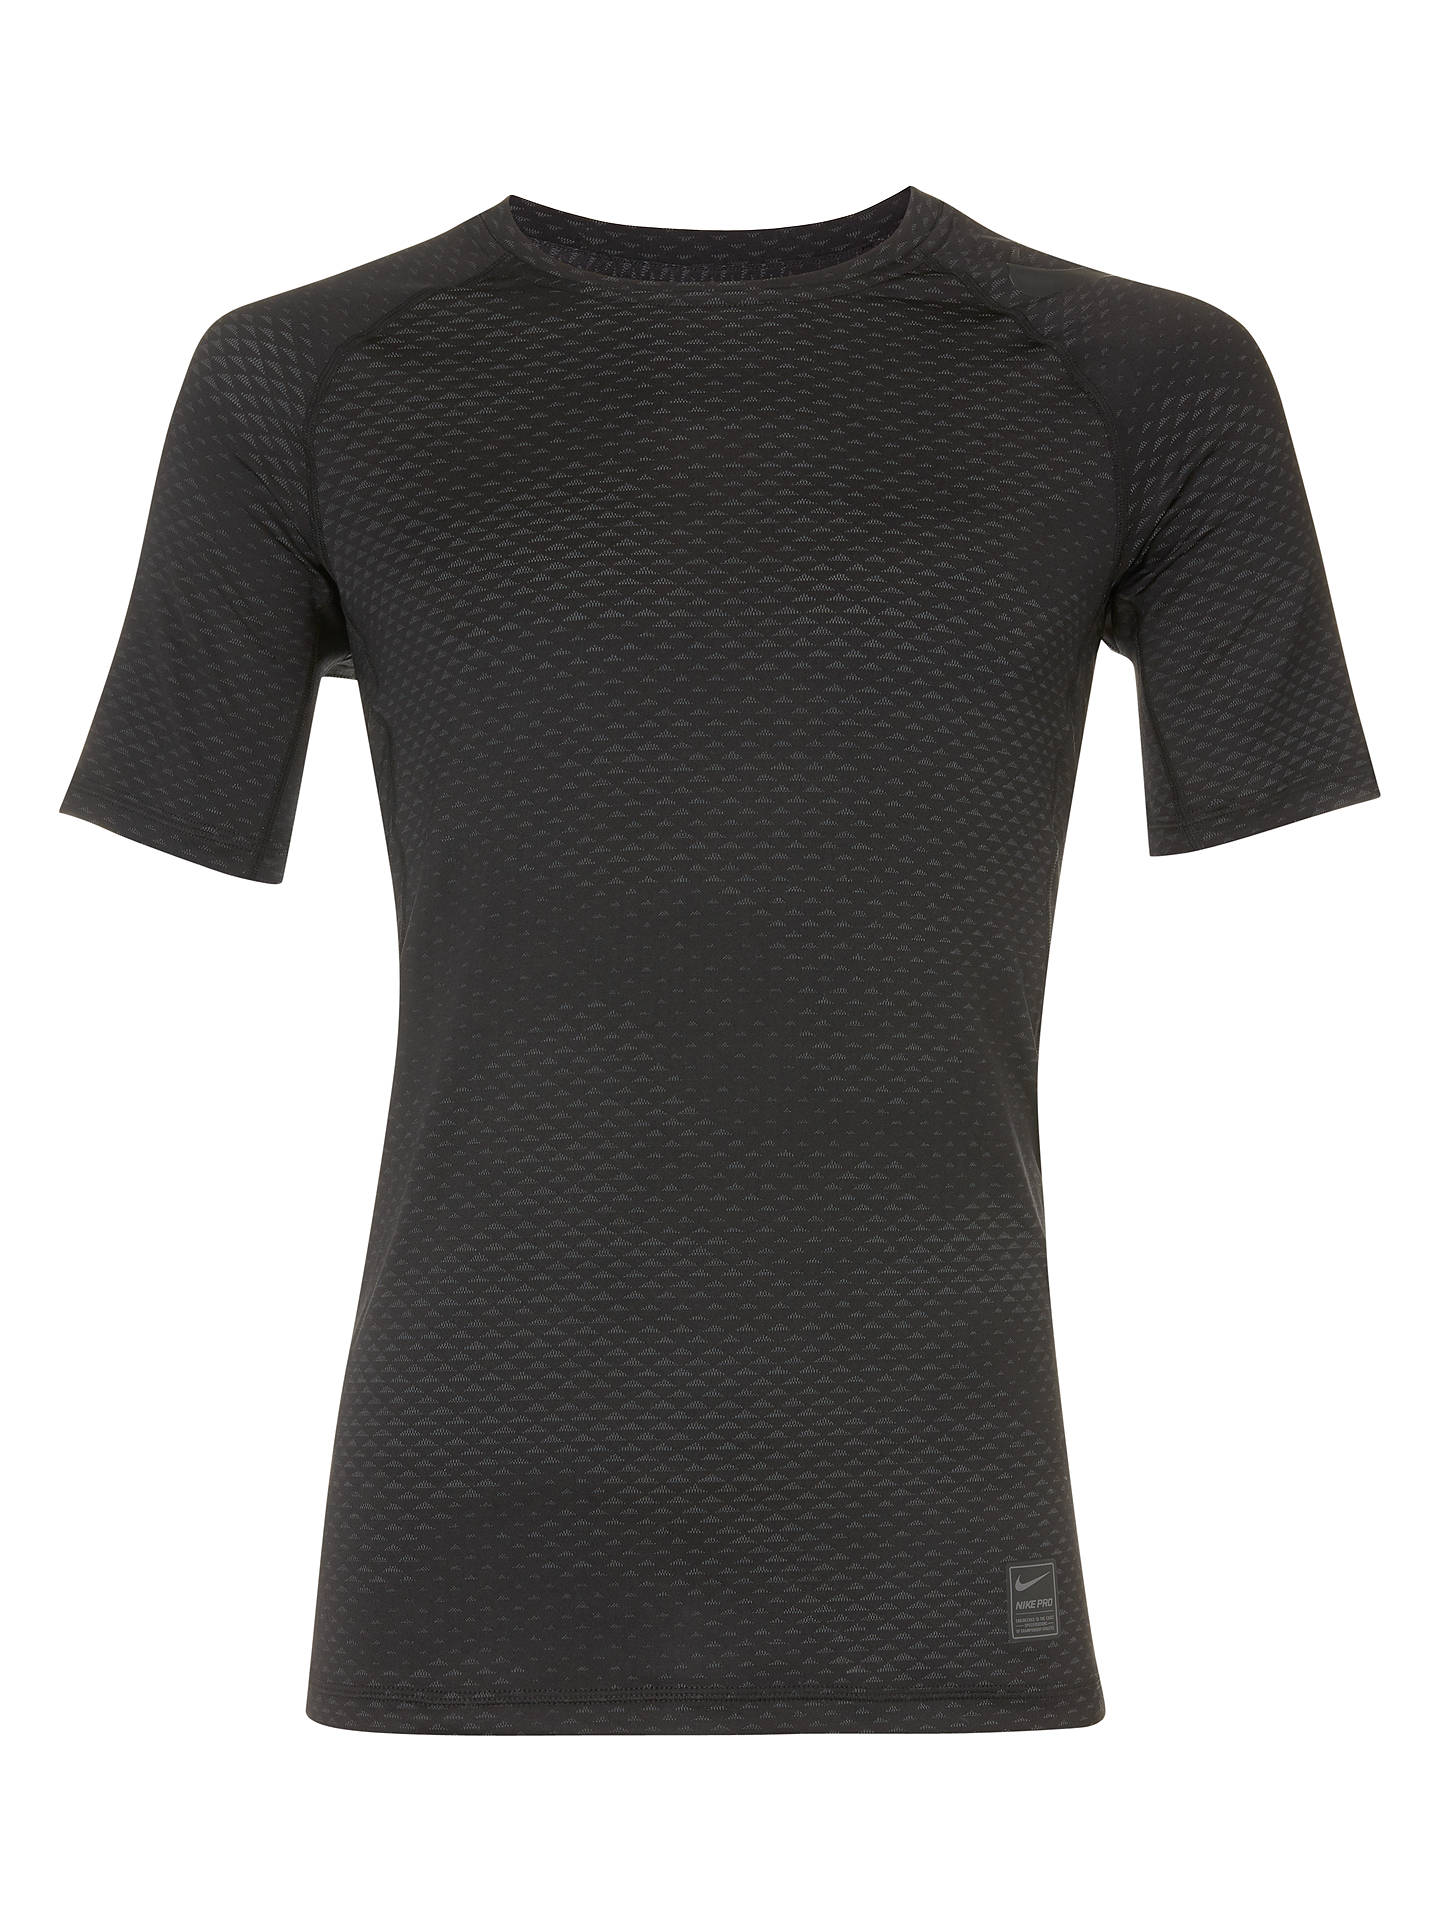 67394985 Buy Nike Pro Hypercool Training Top, Black, S Online at johnlewis.com